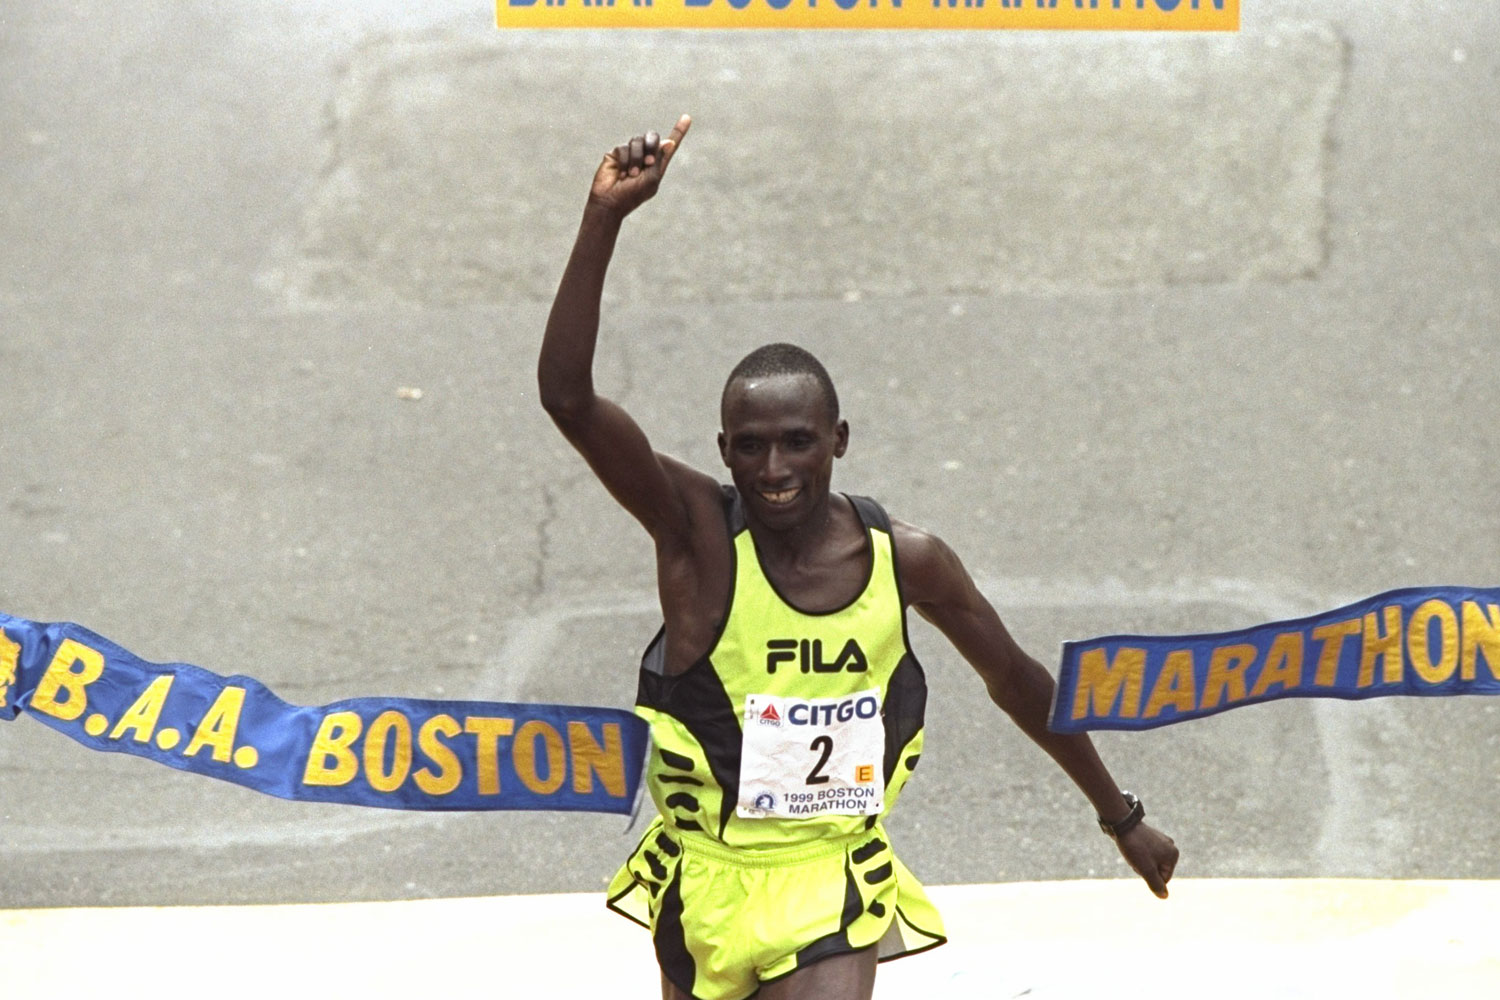 Joseph Chebet crosses the finish line to win the Boston Marathon in 2009.